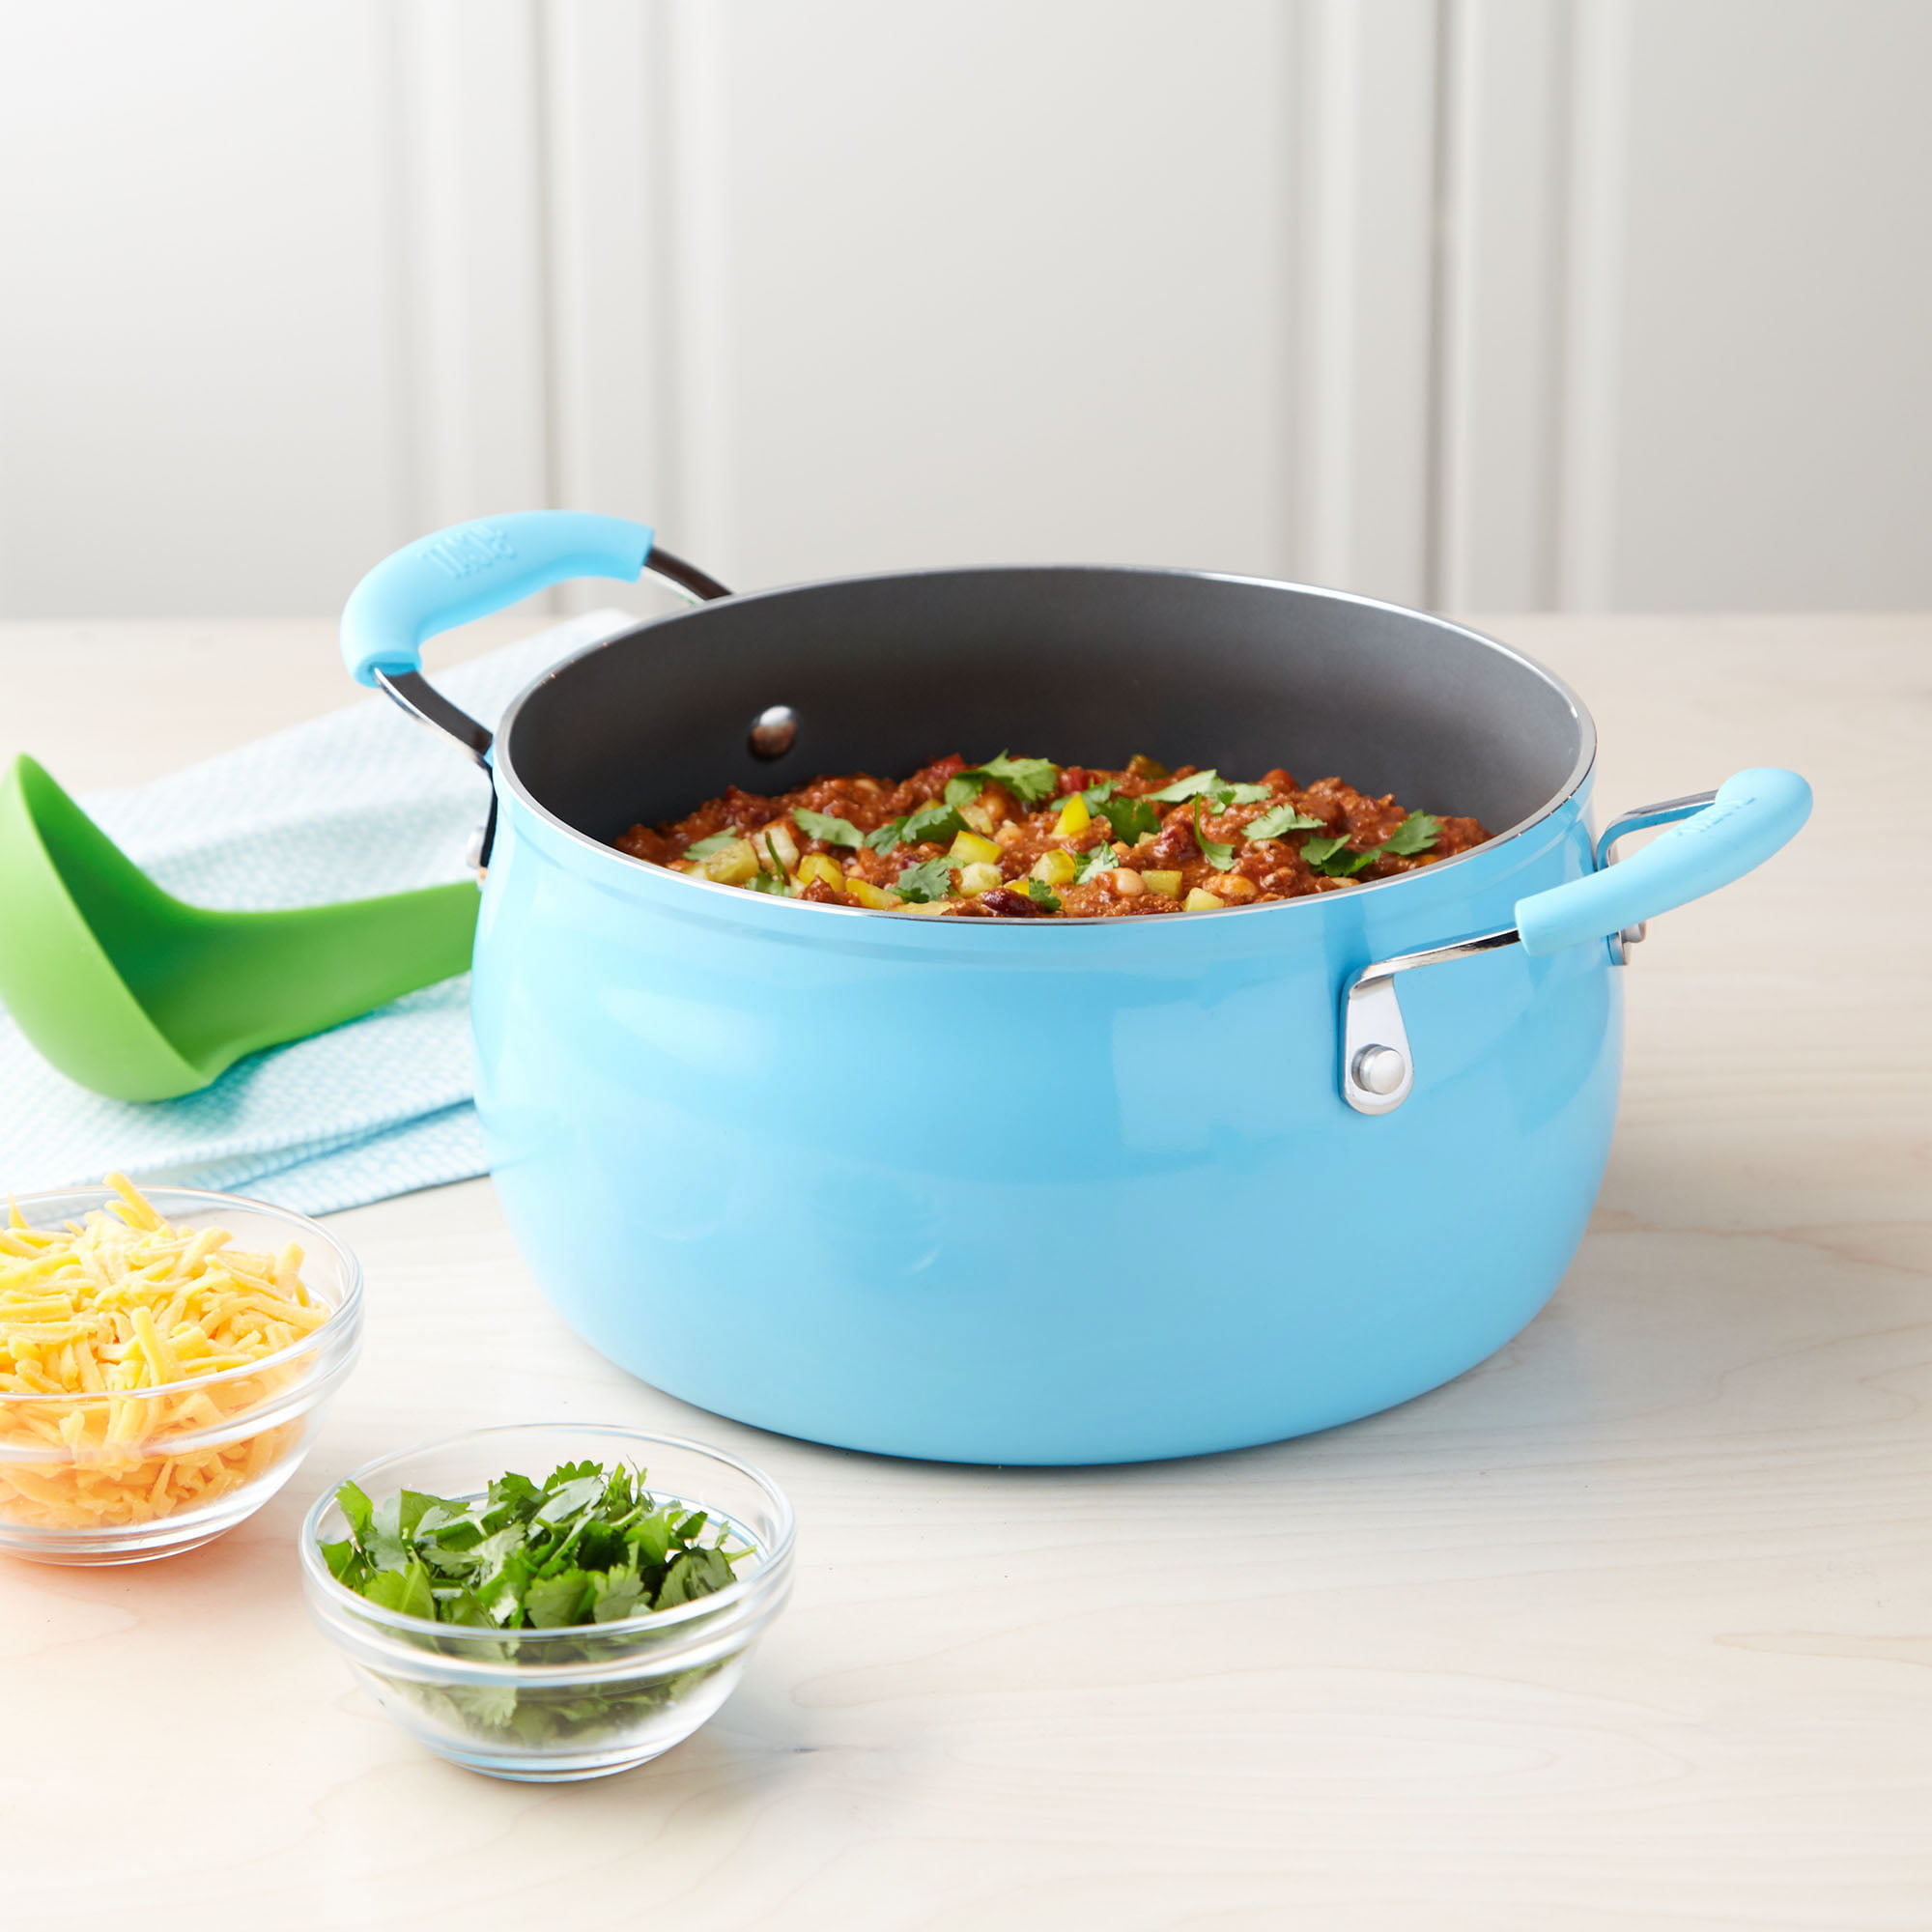 Tasty 5 Quart Non-Stick Dutch Oven with Lid